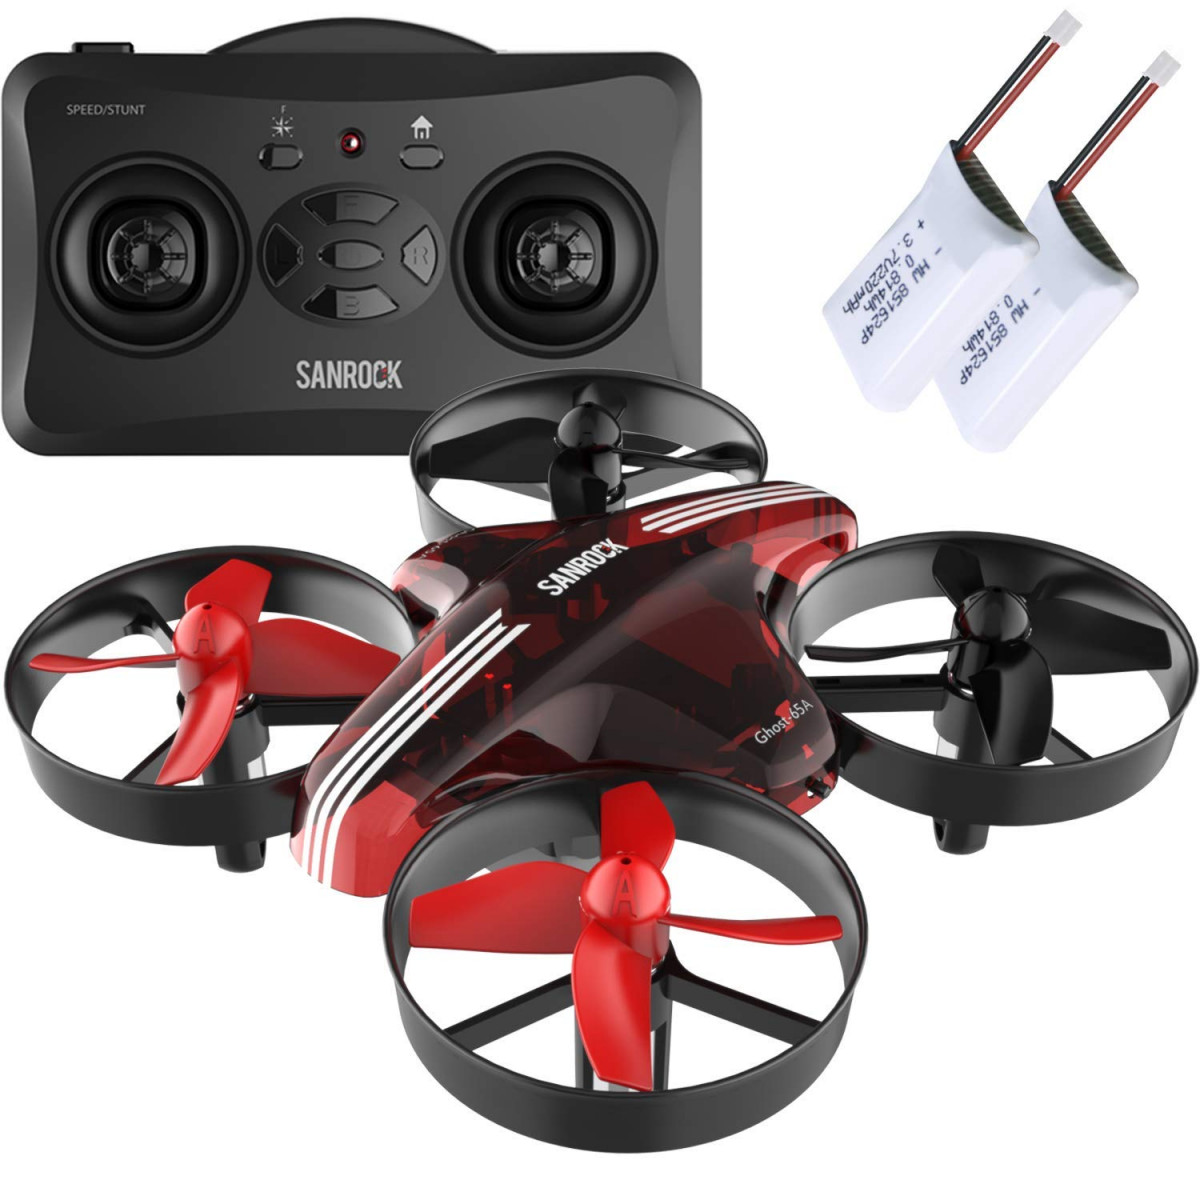 SANROCK Mini Drone GD65A Best for Kids and Beginners RC Helicopter Plane  with Altitude Hold,Headless Mode,Return Home Function,RTF 4 Channel 2 4Ghz